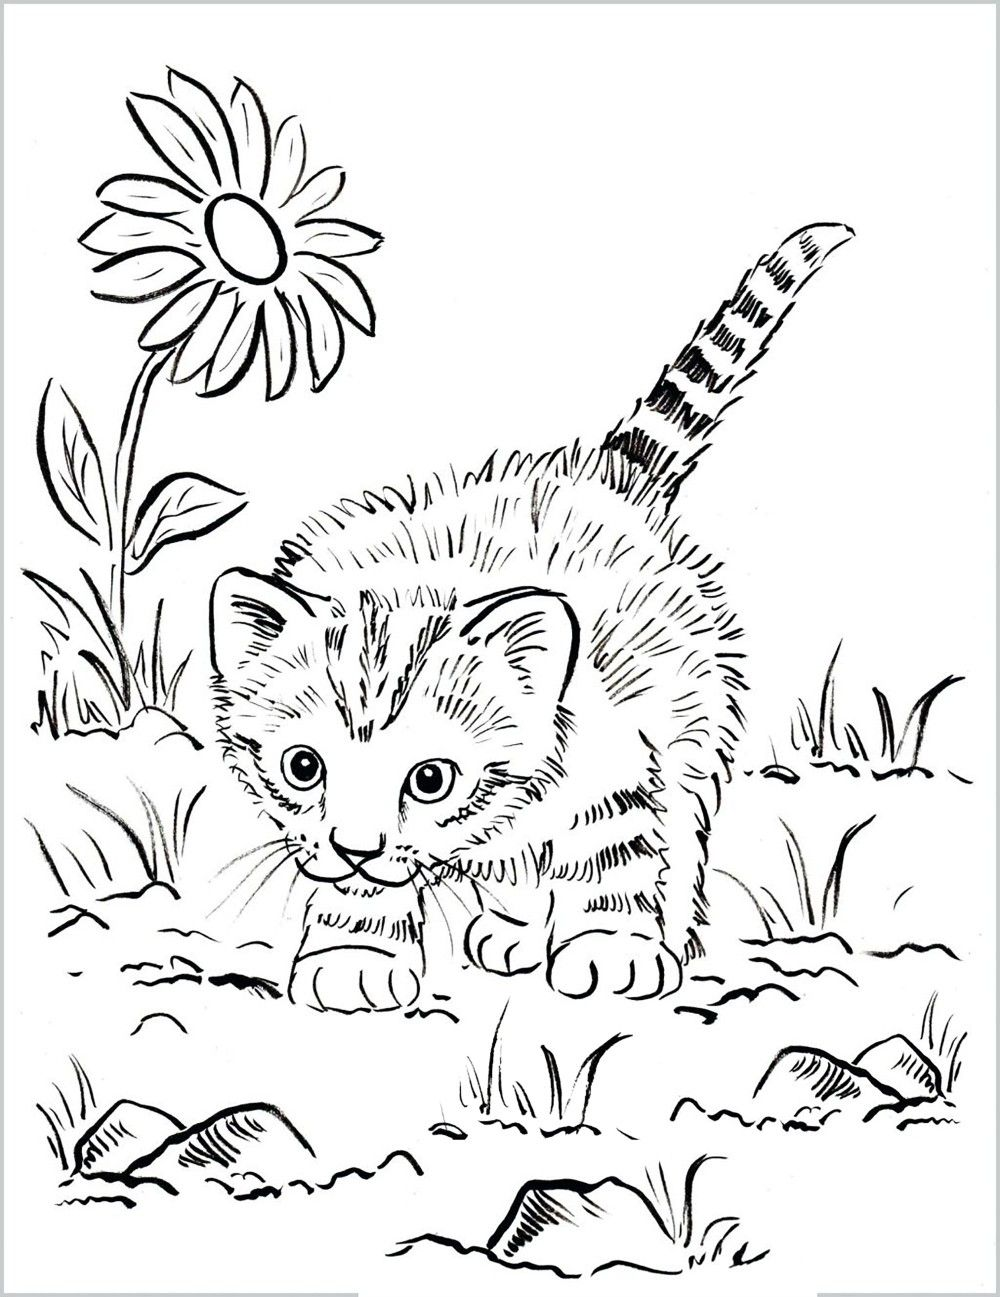 Kitty Coloring Page In 2020 Kittens Coloring Cat Coloring Page Coloring Pages